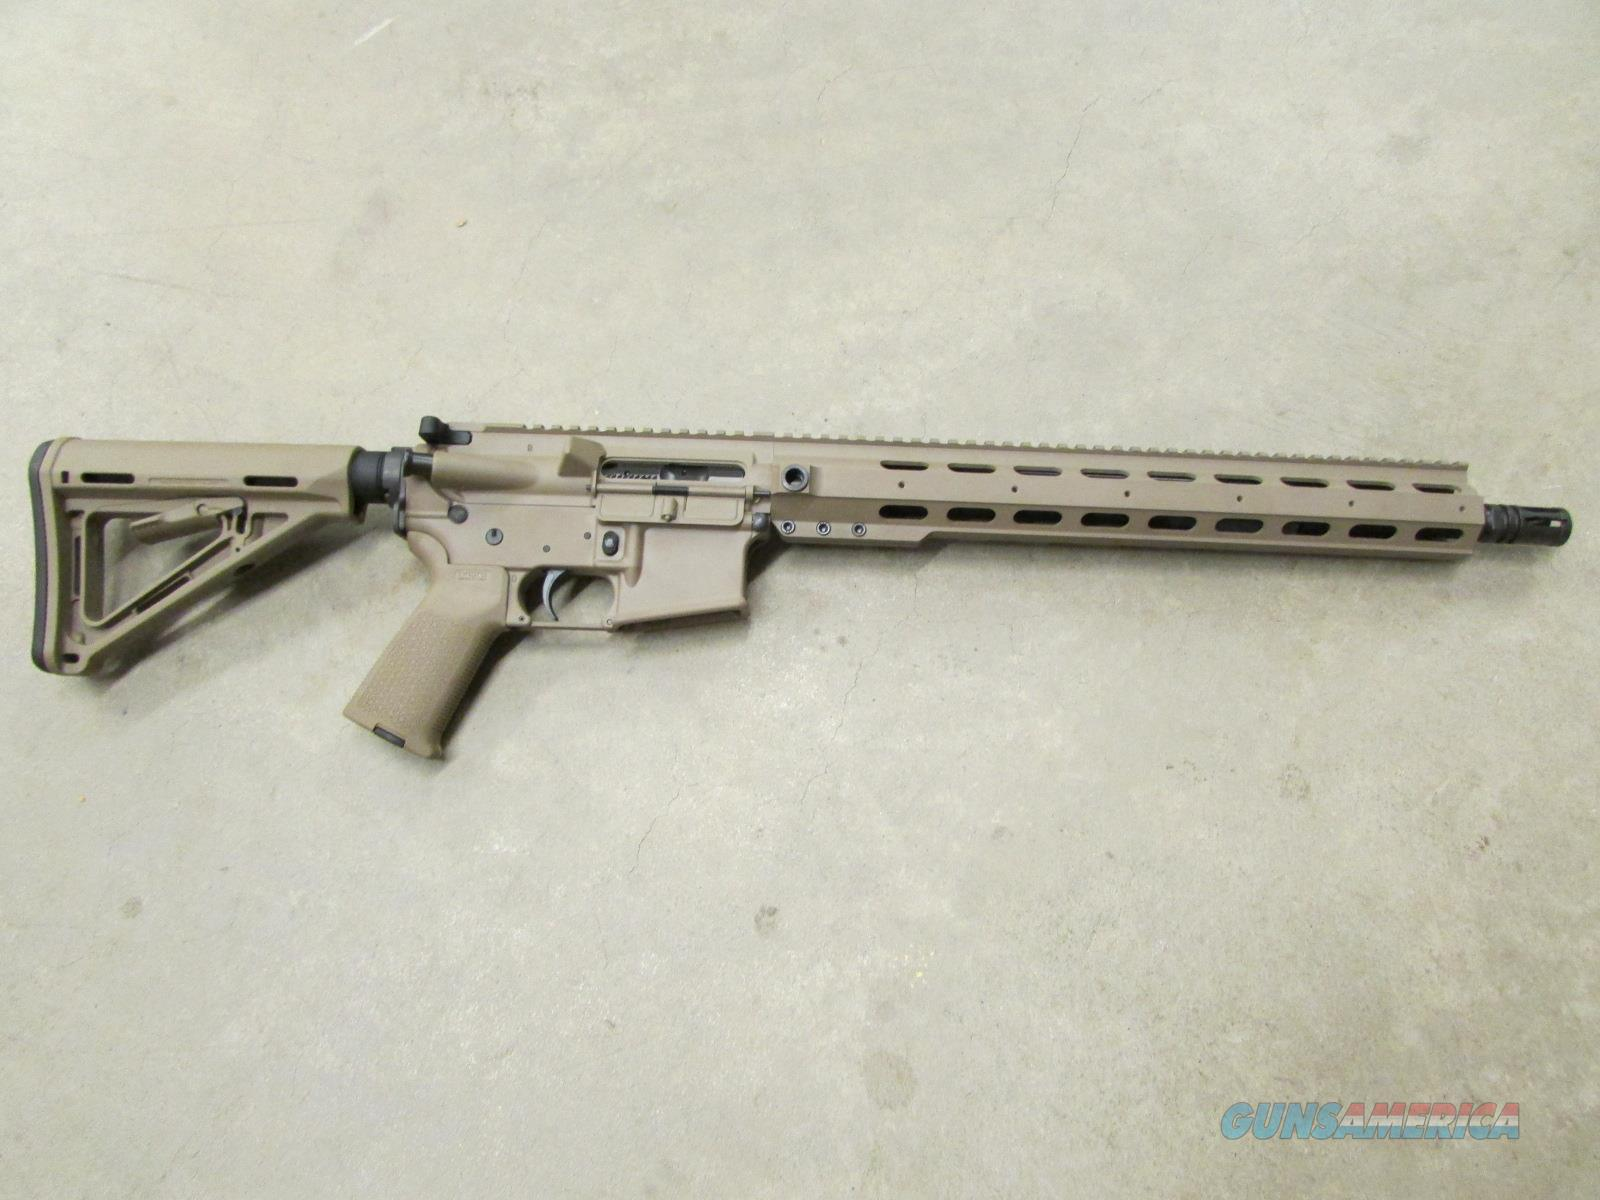 "ANDERSON COMPLETE AR-15 MAGPUL FDE CERAKOTE 5.56 NATO 16""  Guns > Rifles > AR-15 Rifles - Small Manufacturers > Complete Rifle"